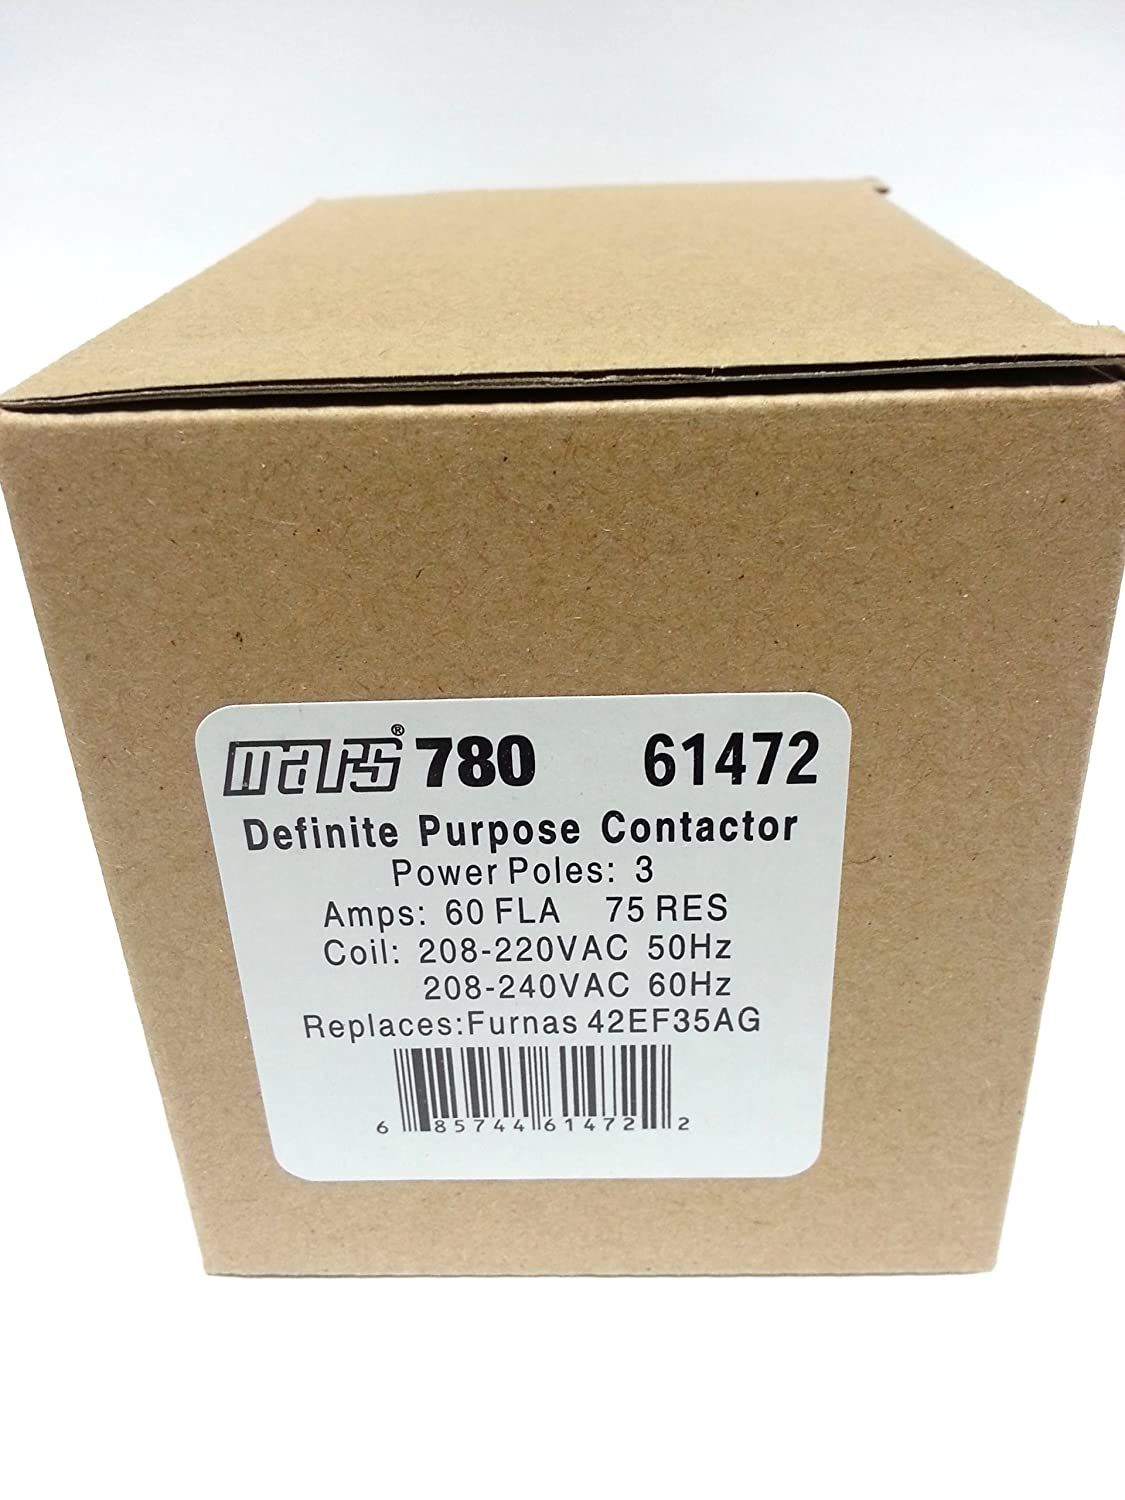 MARS 780 61472 CONTACTOR (direct replacement of Furnas 42EF35AG):  Industrial Hvac Components: Amazon.com: Industrial & Scientific